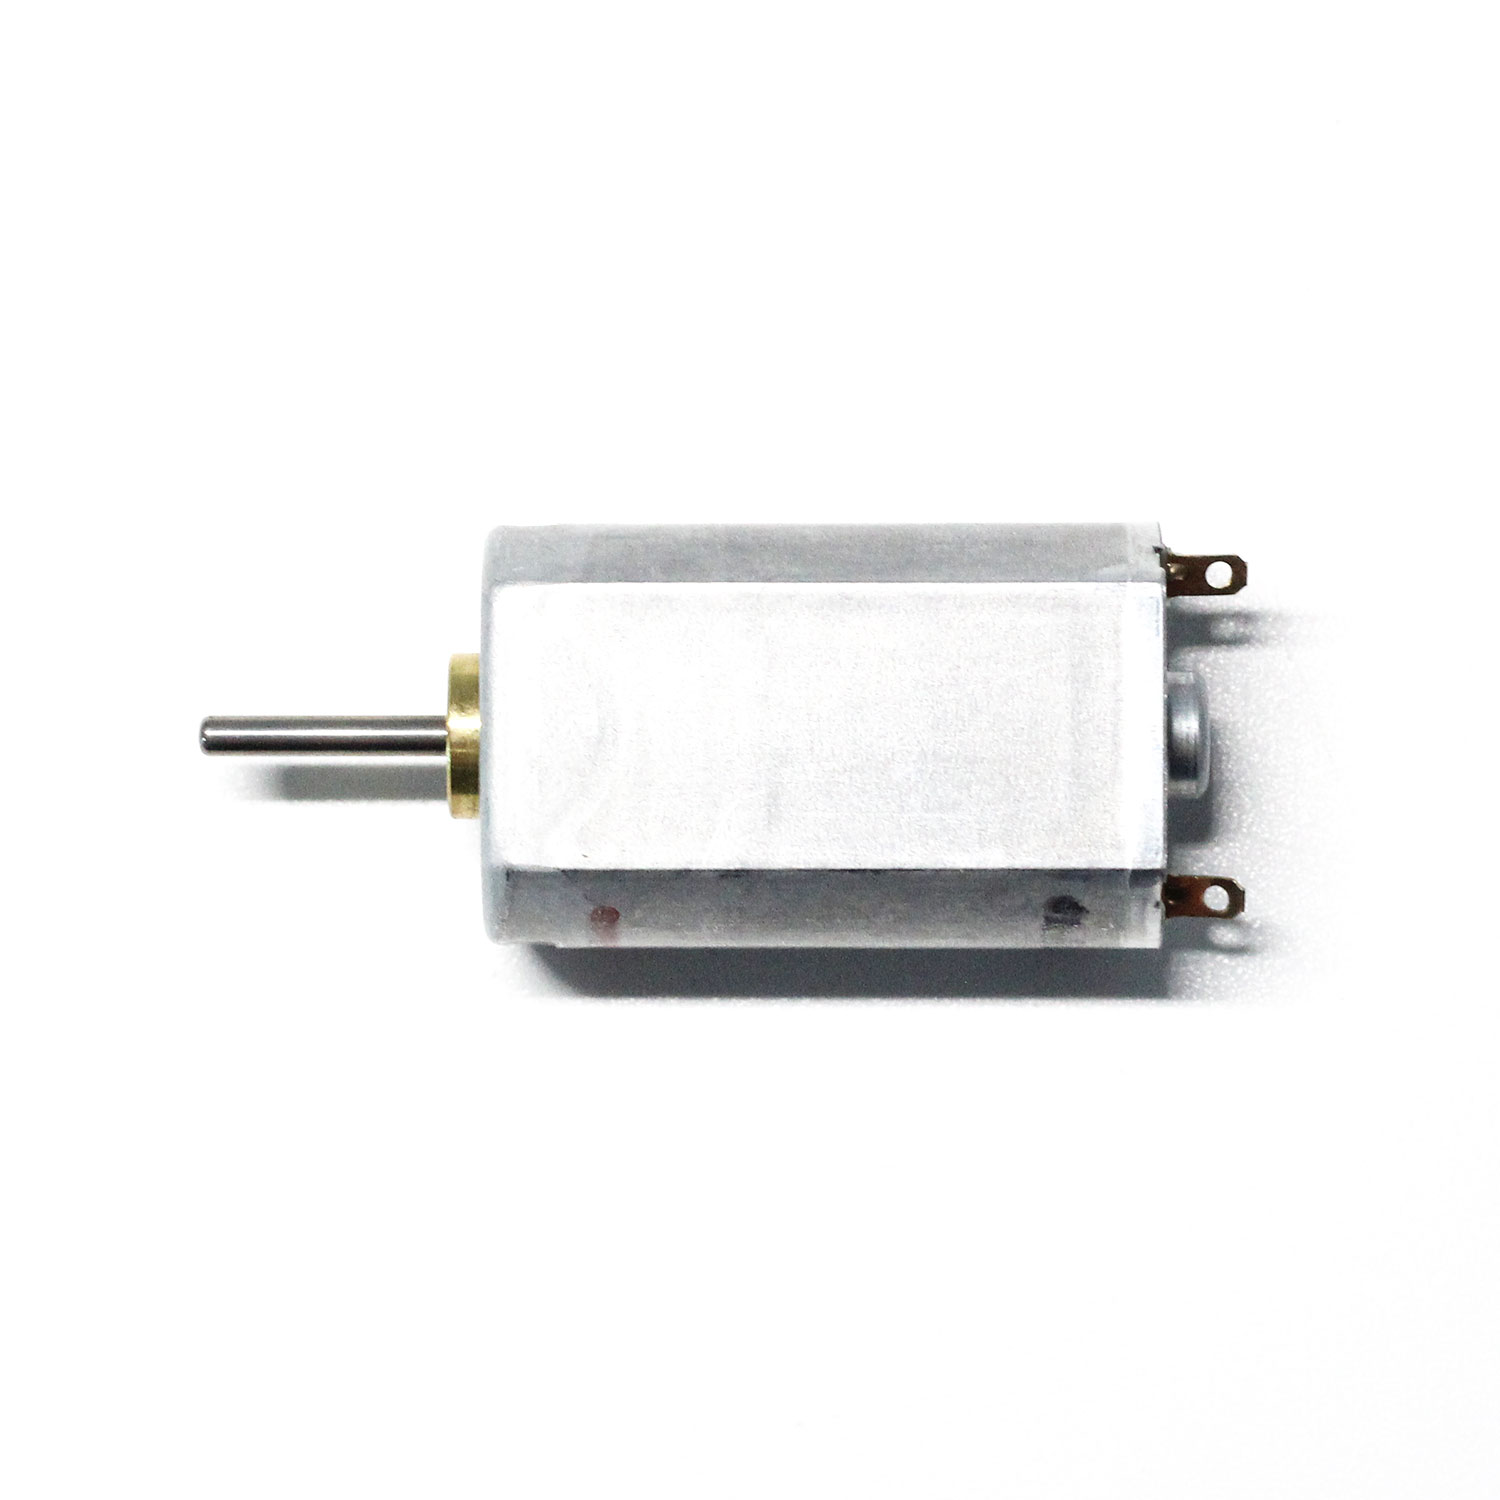 DC 3-12V 29712RPM RC Hobby Aircraft High Speed Magnetic 180 Micro Motor Top